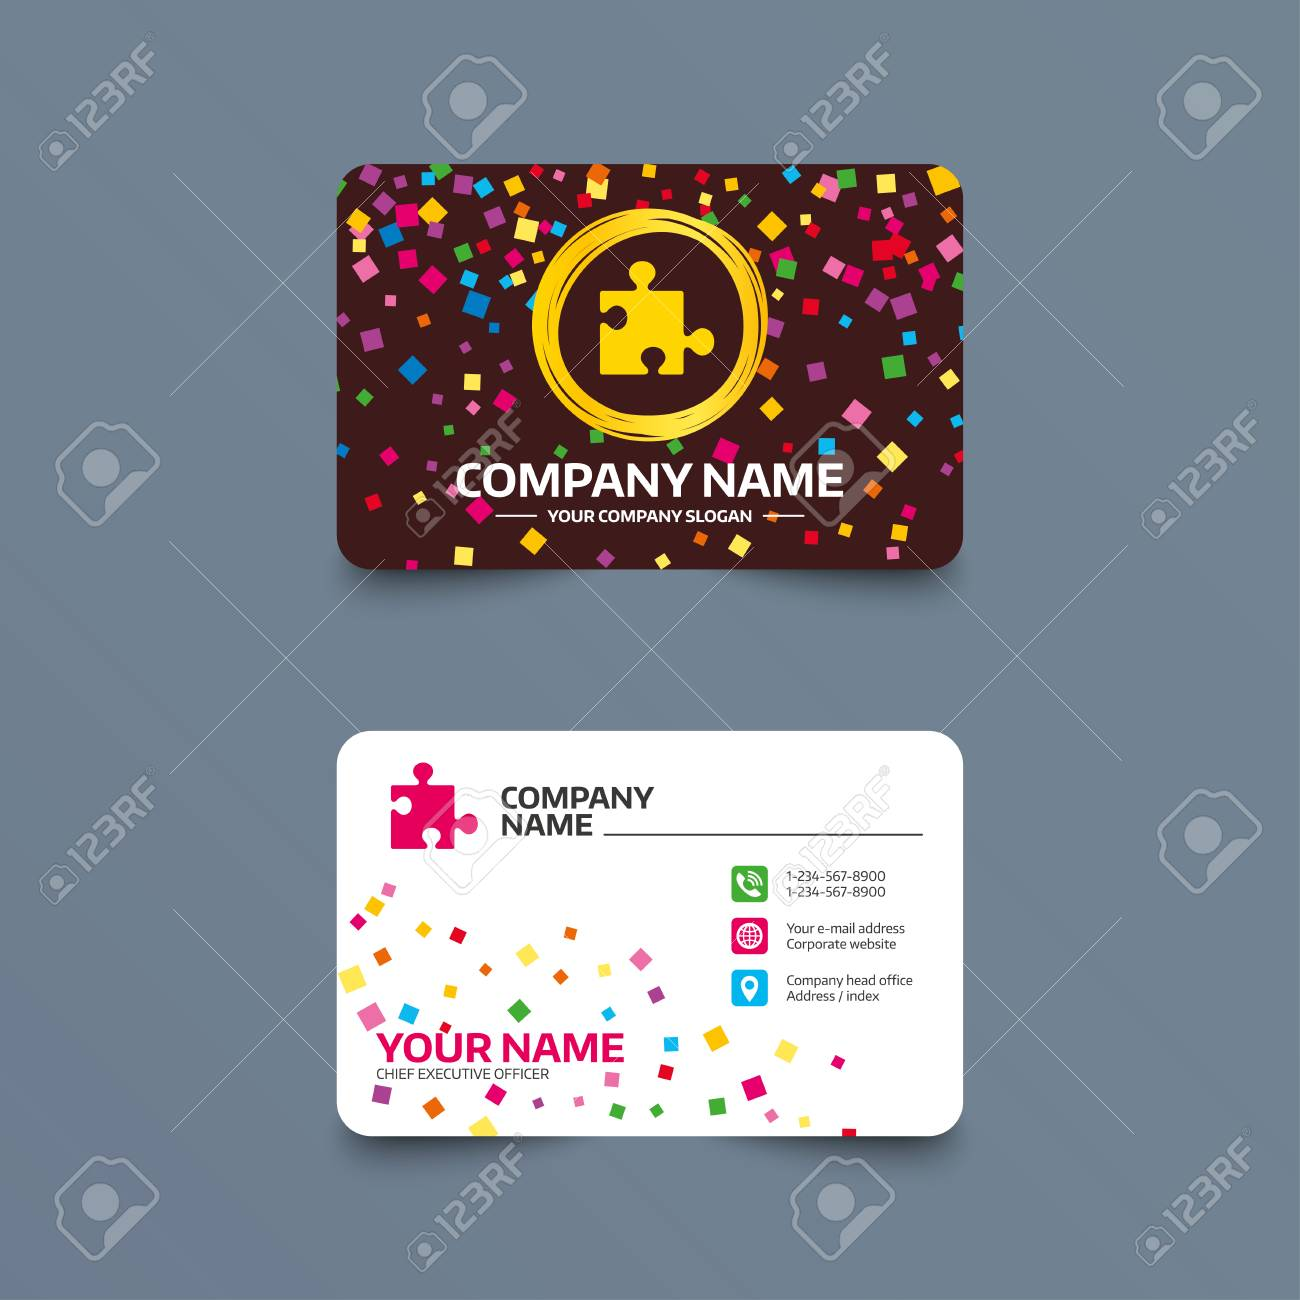 Business card template with confetti pieces puzzle piece sign business card template with confetti pieces puzzle piece sign icon strategy symbol phone colourmoves